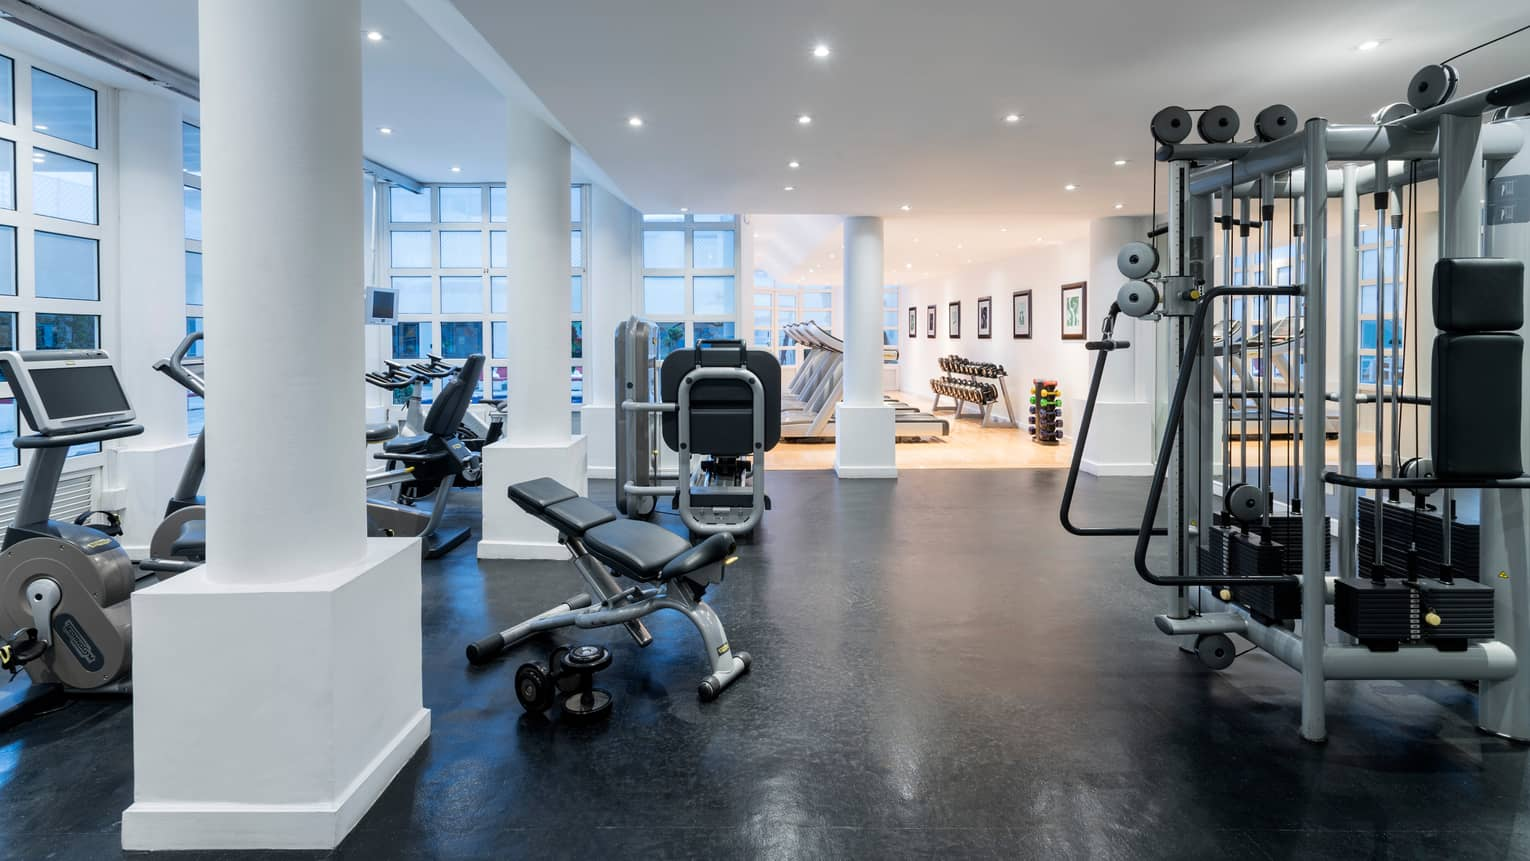 Fitness Centre weights and cardio machines by white pillars